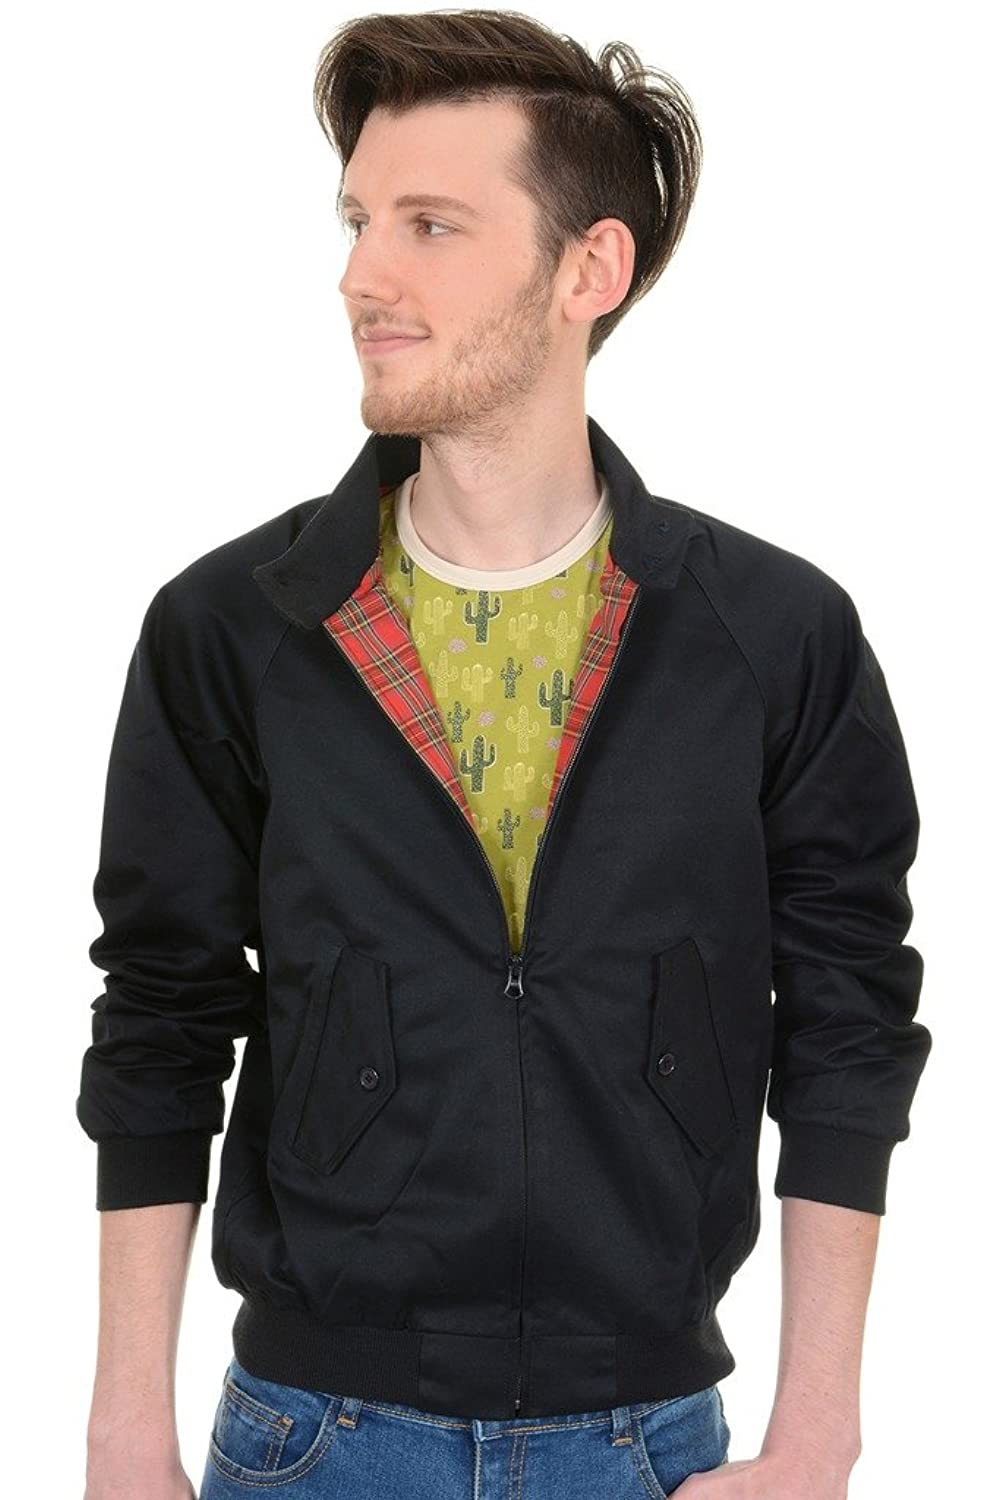 Men's Vintage Style Coats and Jackets Mens Run & Fly 60s Retro Mod Navy Harrington Jacket $49.95 AT vintagedancer.com